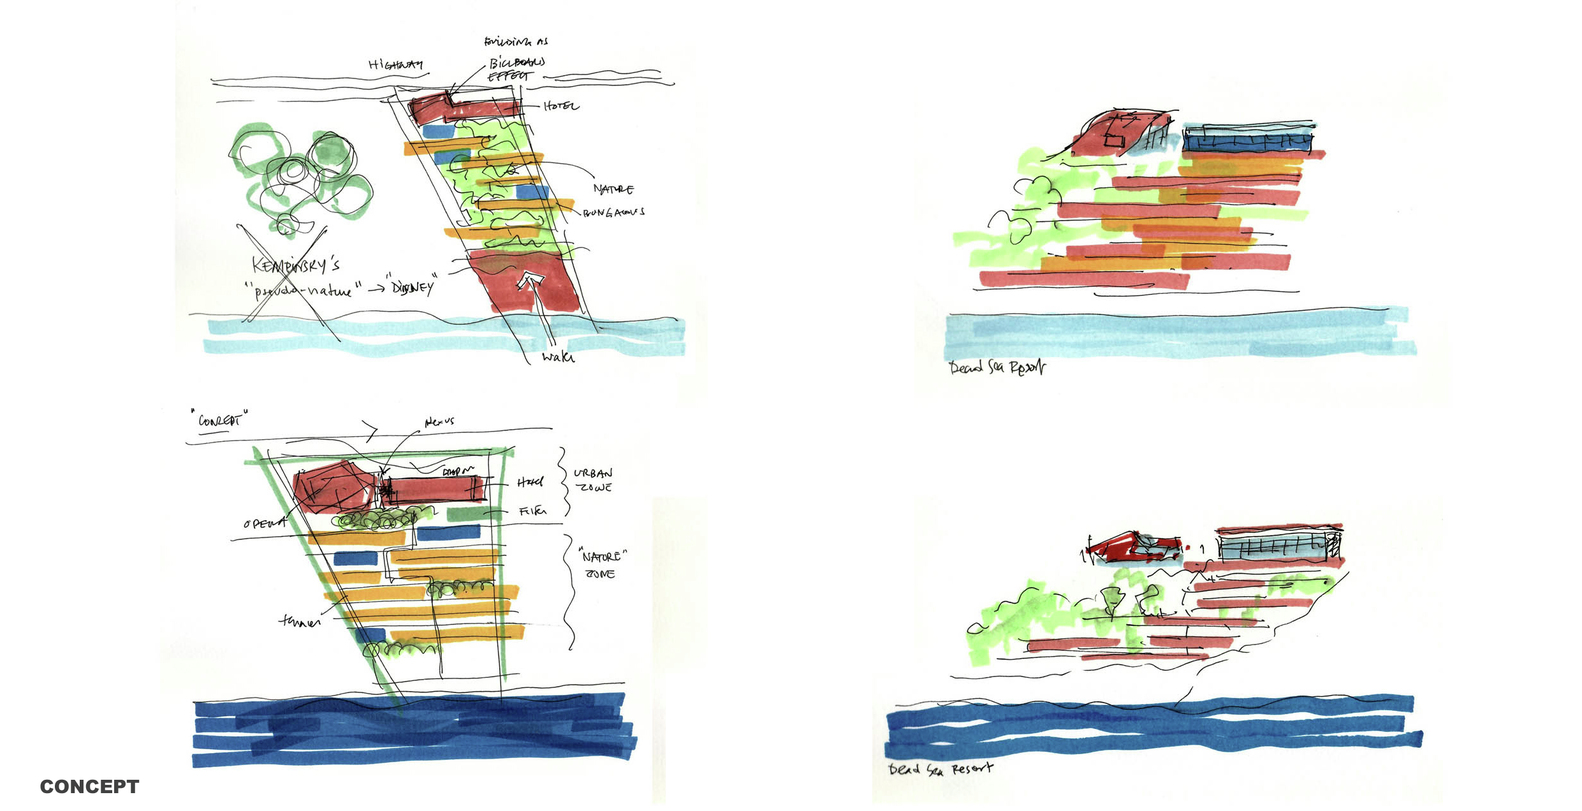 raid 5 concept with diagram starter wiring chevy 305 gallery of dead sea resort and opera house accent design